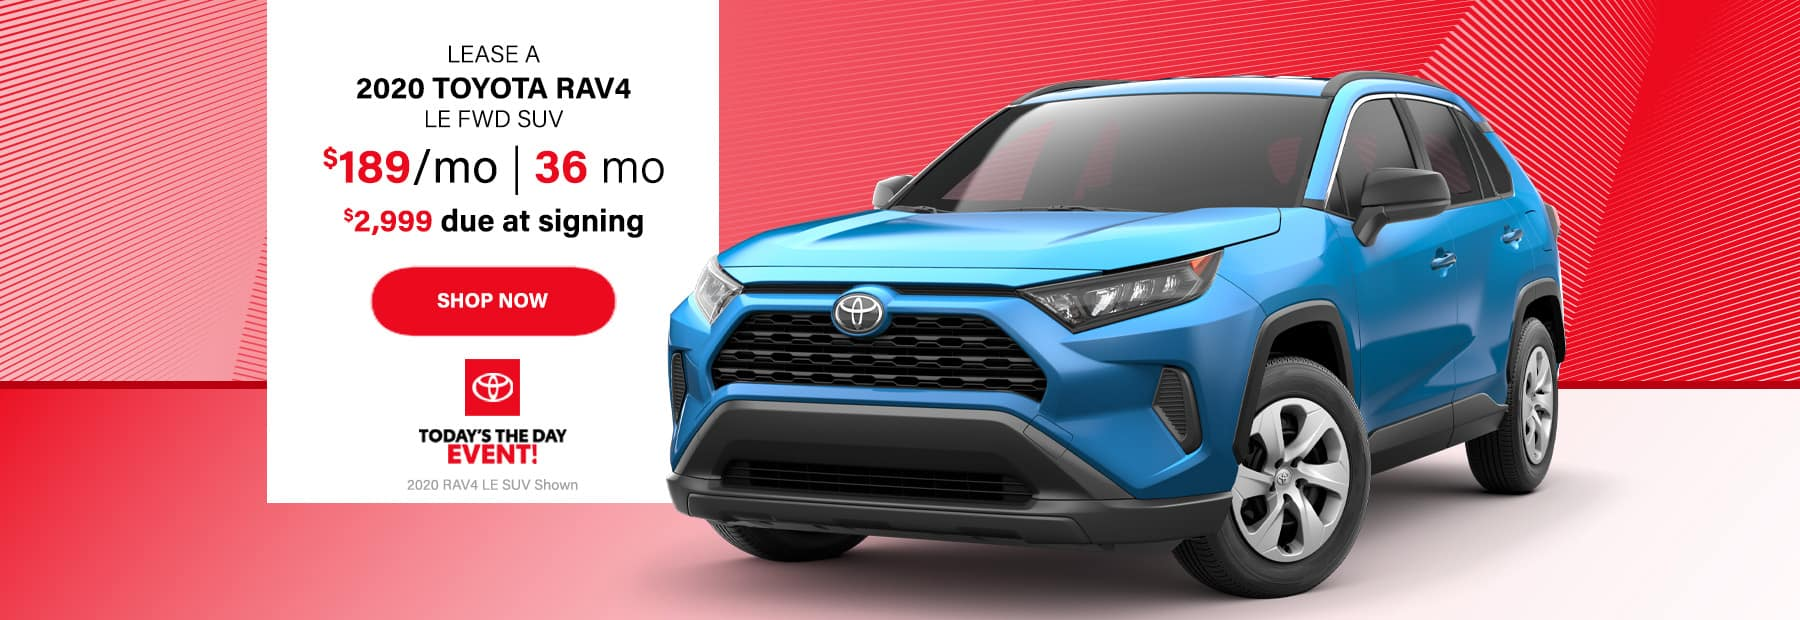 Lease a 2020 Toyota RAV4 LE FWD SUV for $189/mo. for 36 mos. with $2,999 down